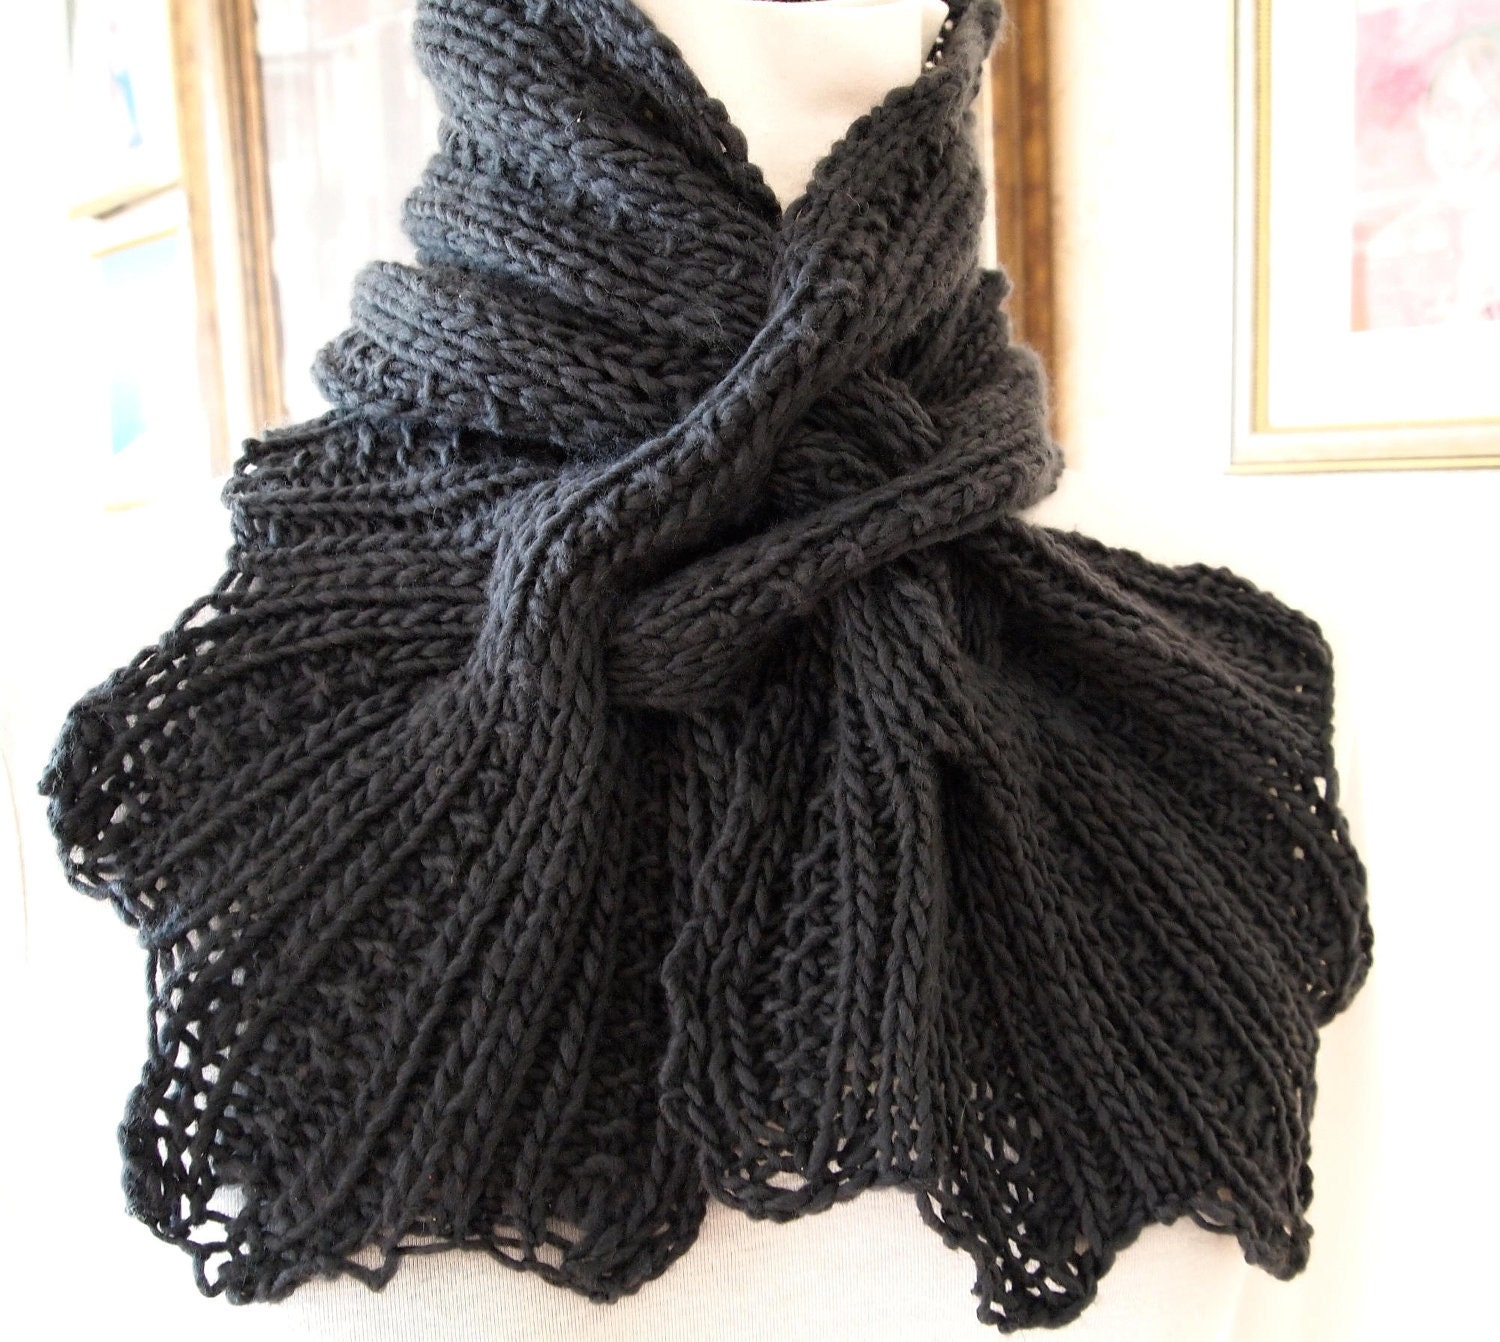 Knitting Pattern Of Scarf : HAND KNIT SCARF PATTERNS   Free Patterns